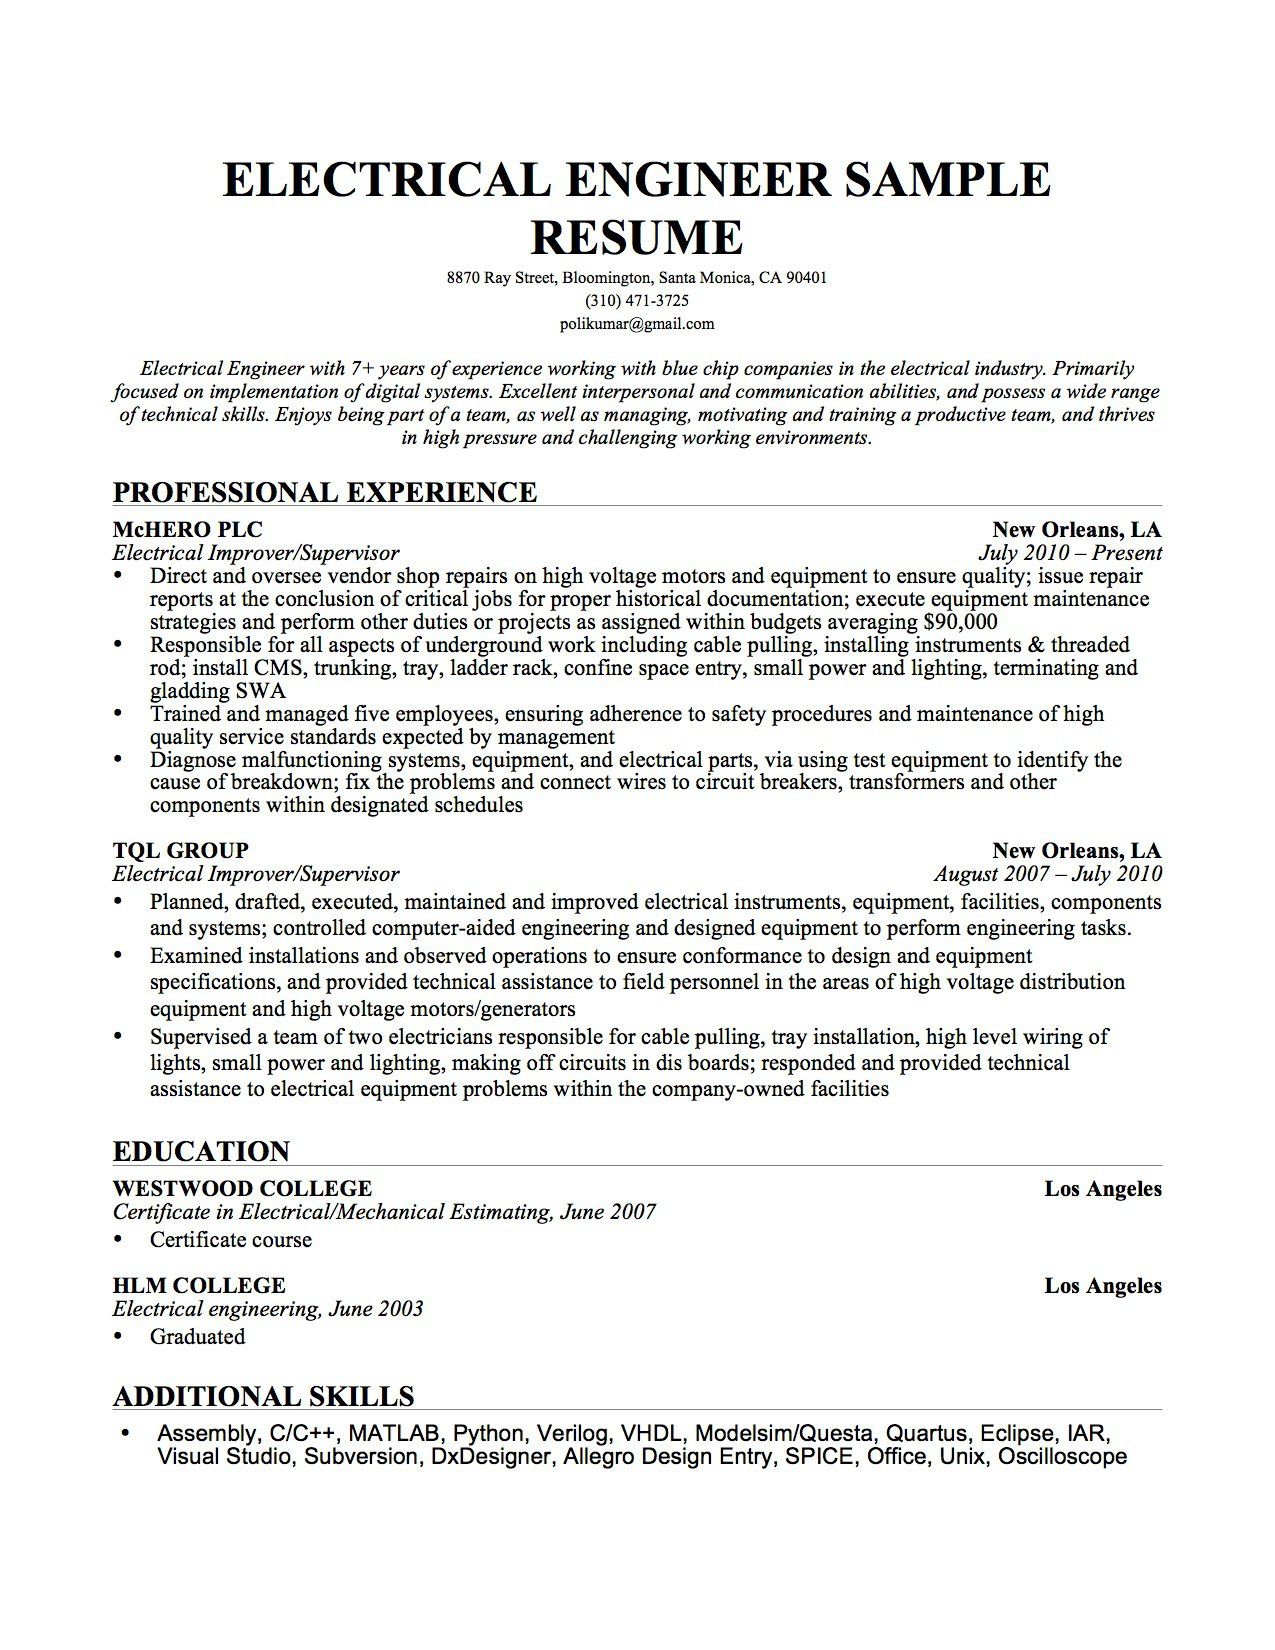 engineer sample resume equipment fixed biomedical technician ...